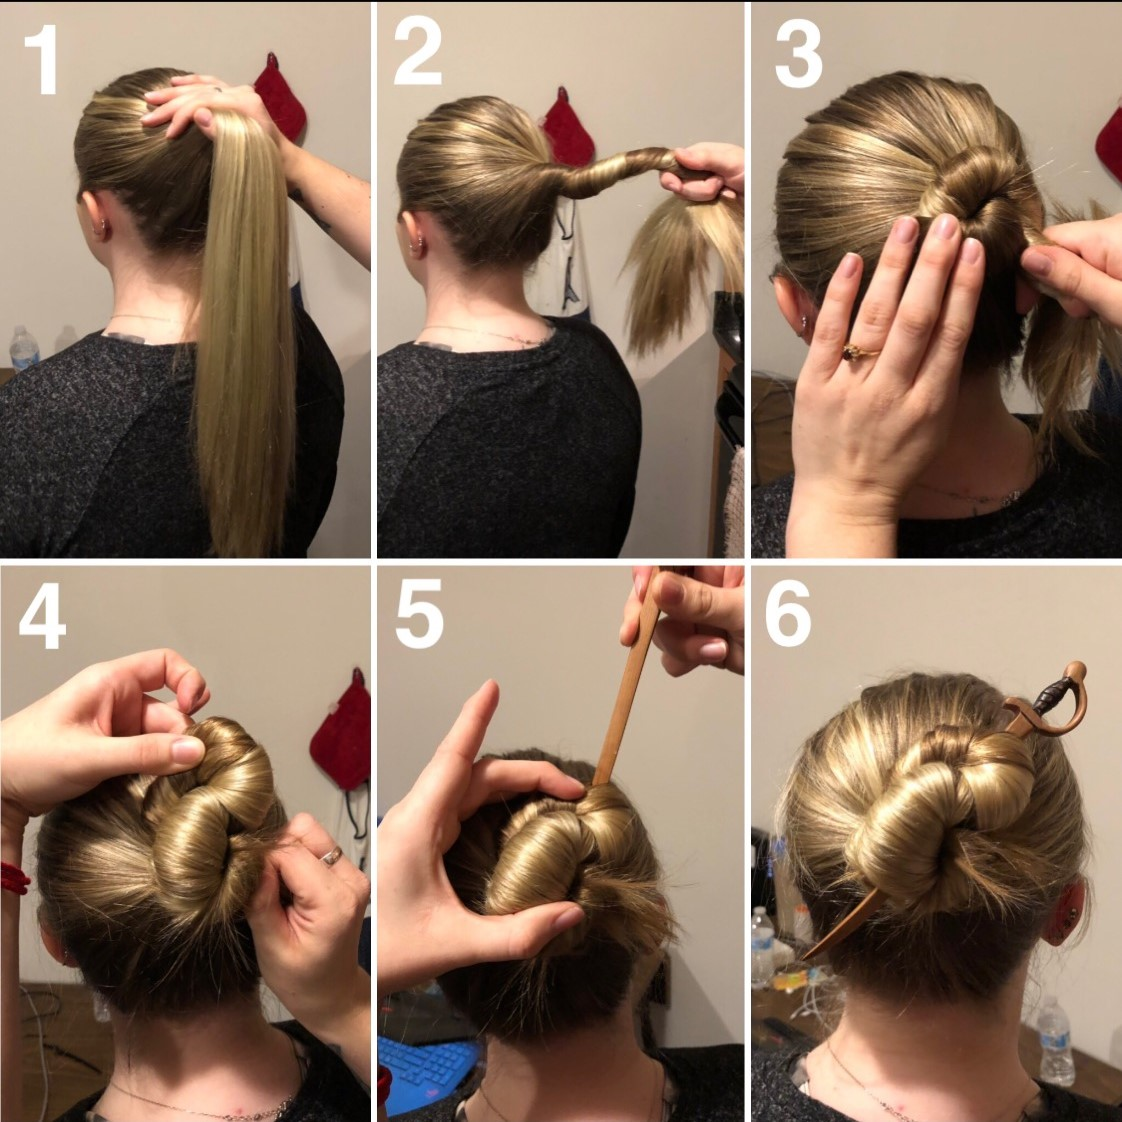 f6c35d151 Hair stick tutorial: an easy, trendy alternative to styling long ...